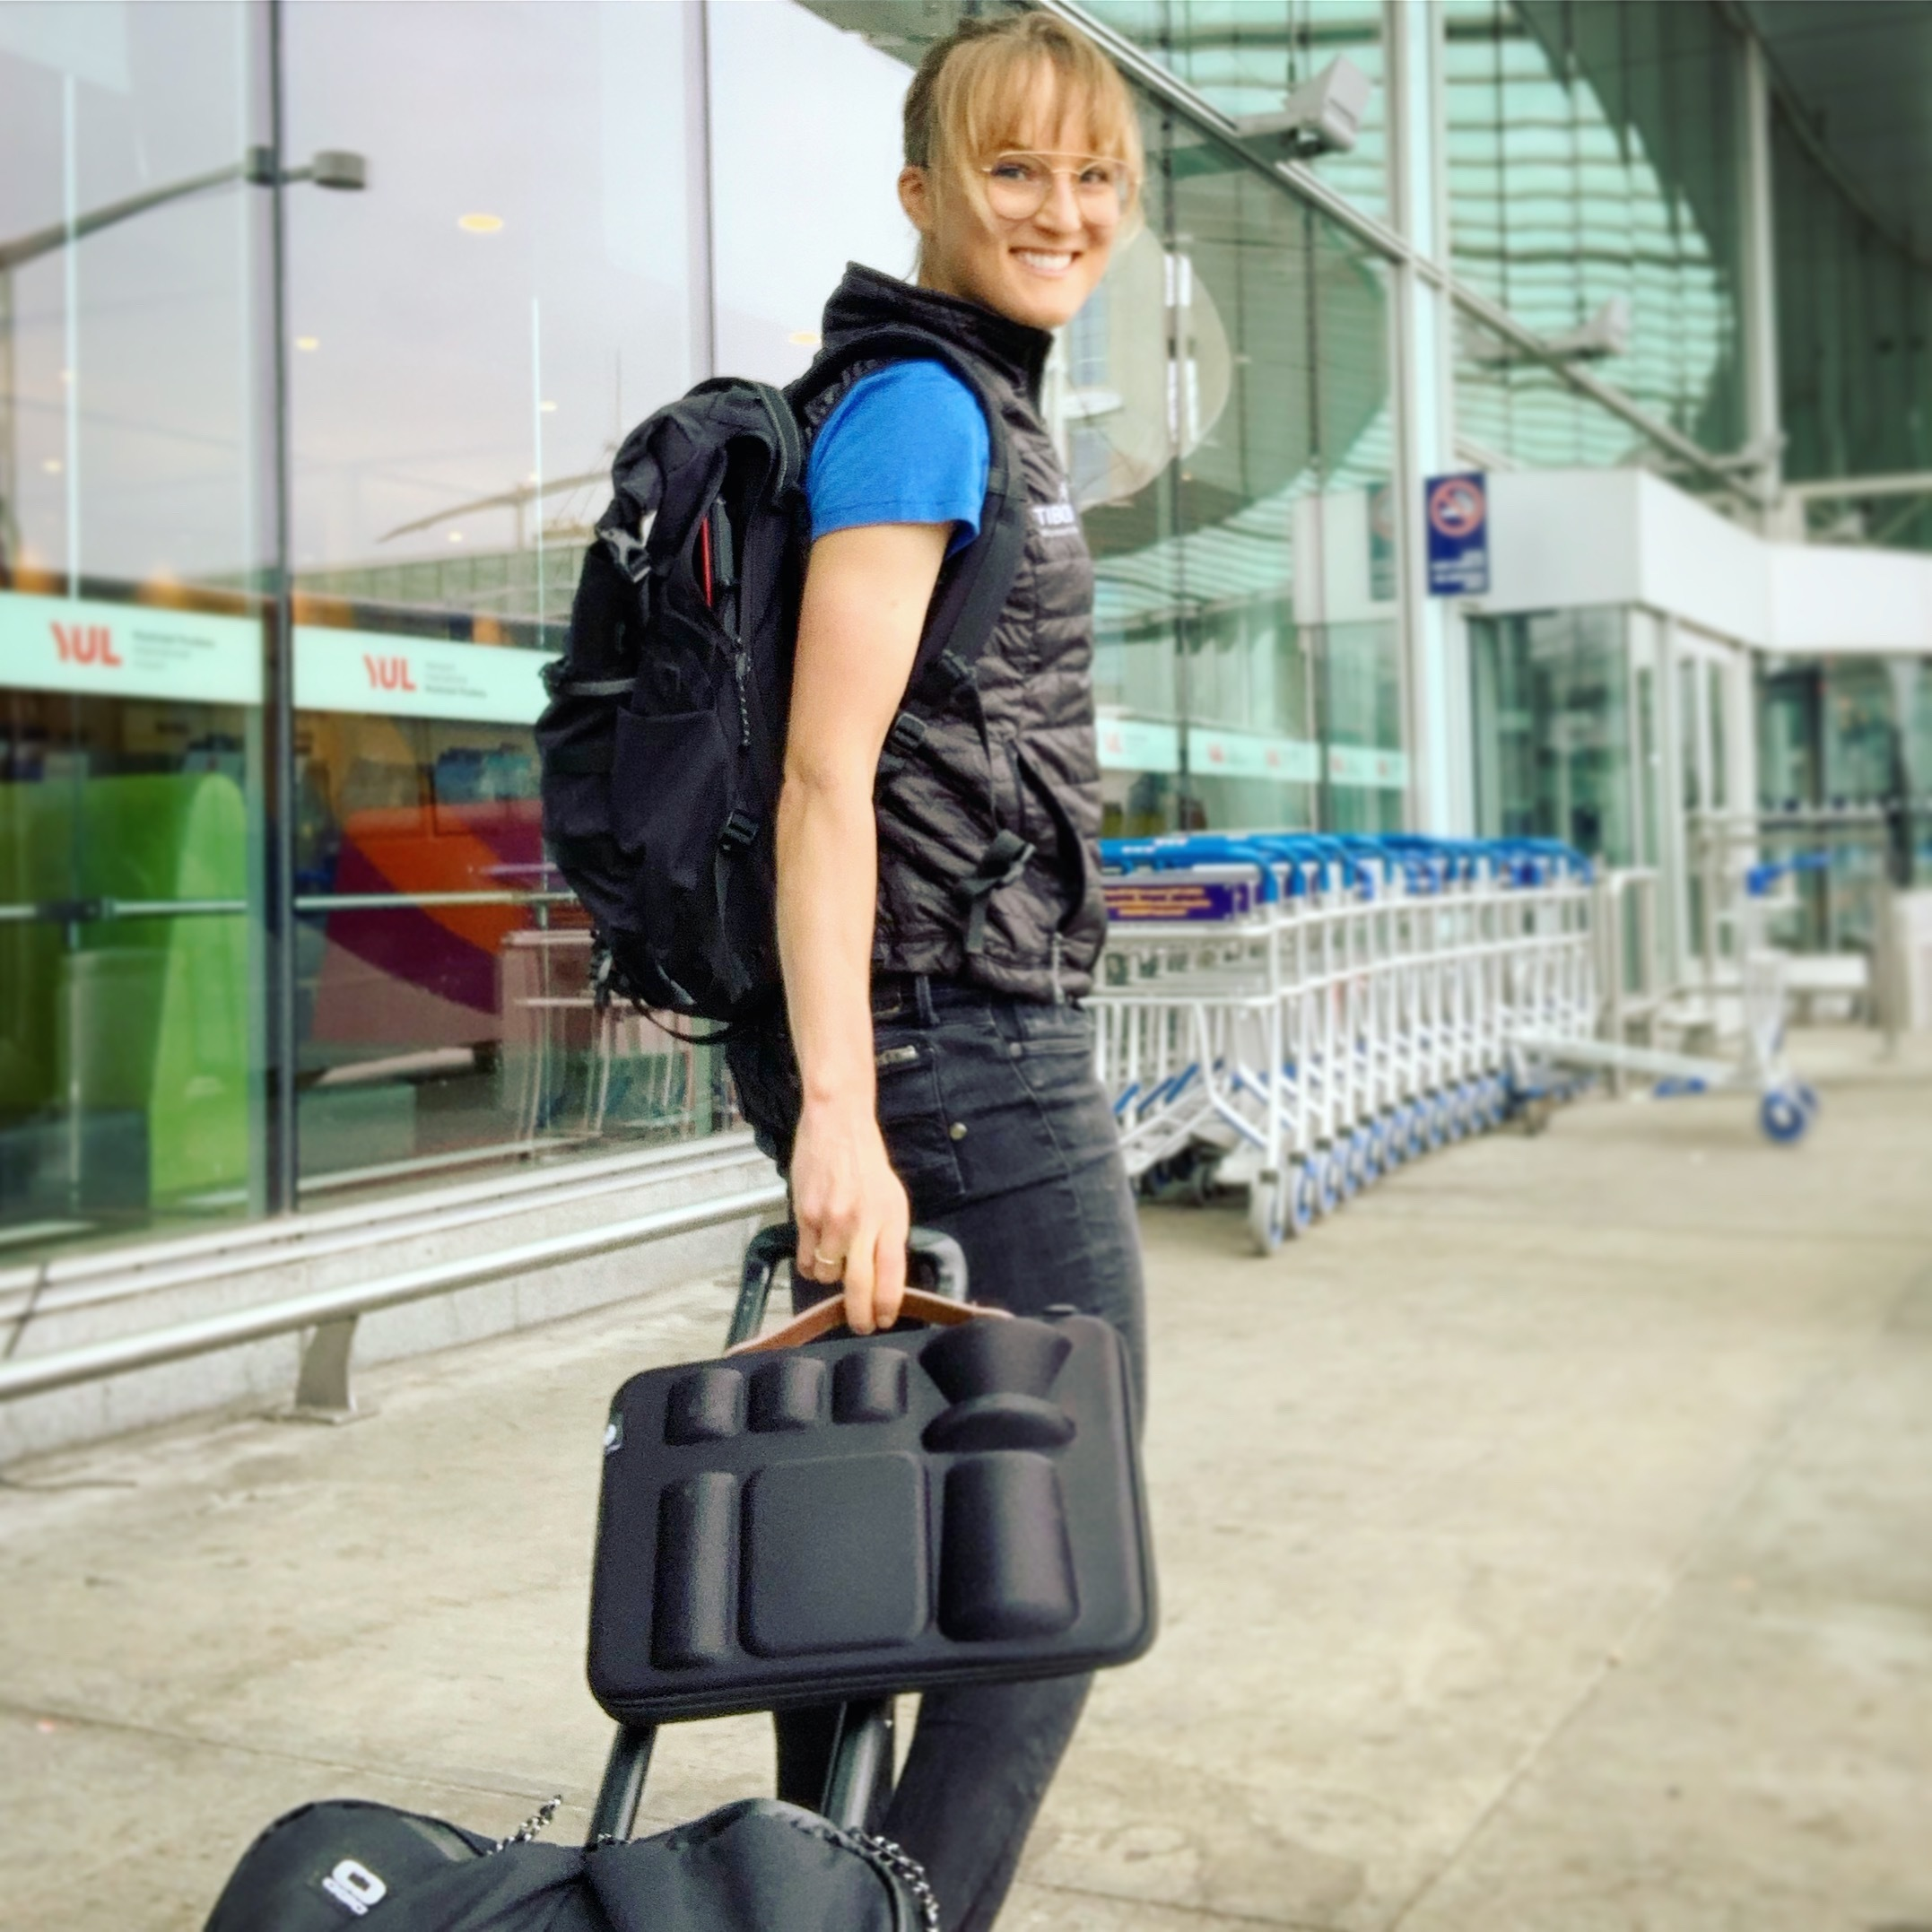 Timemore Nano Carrying kit at the airport Lex Albrecht